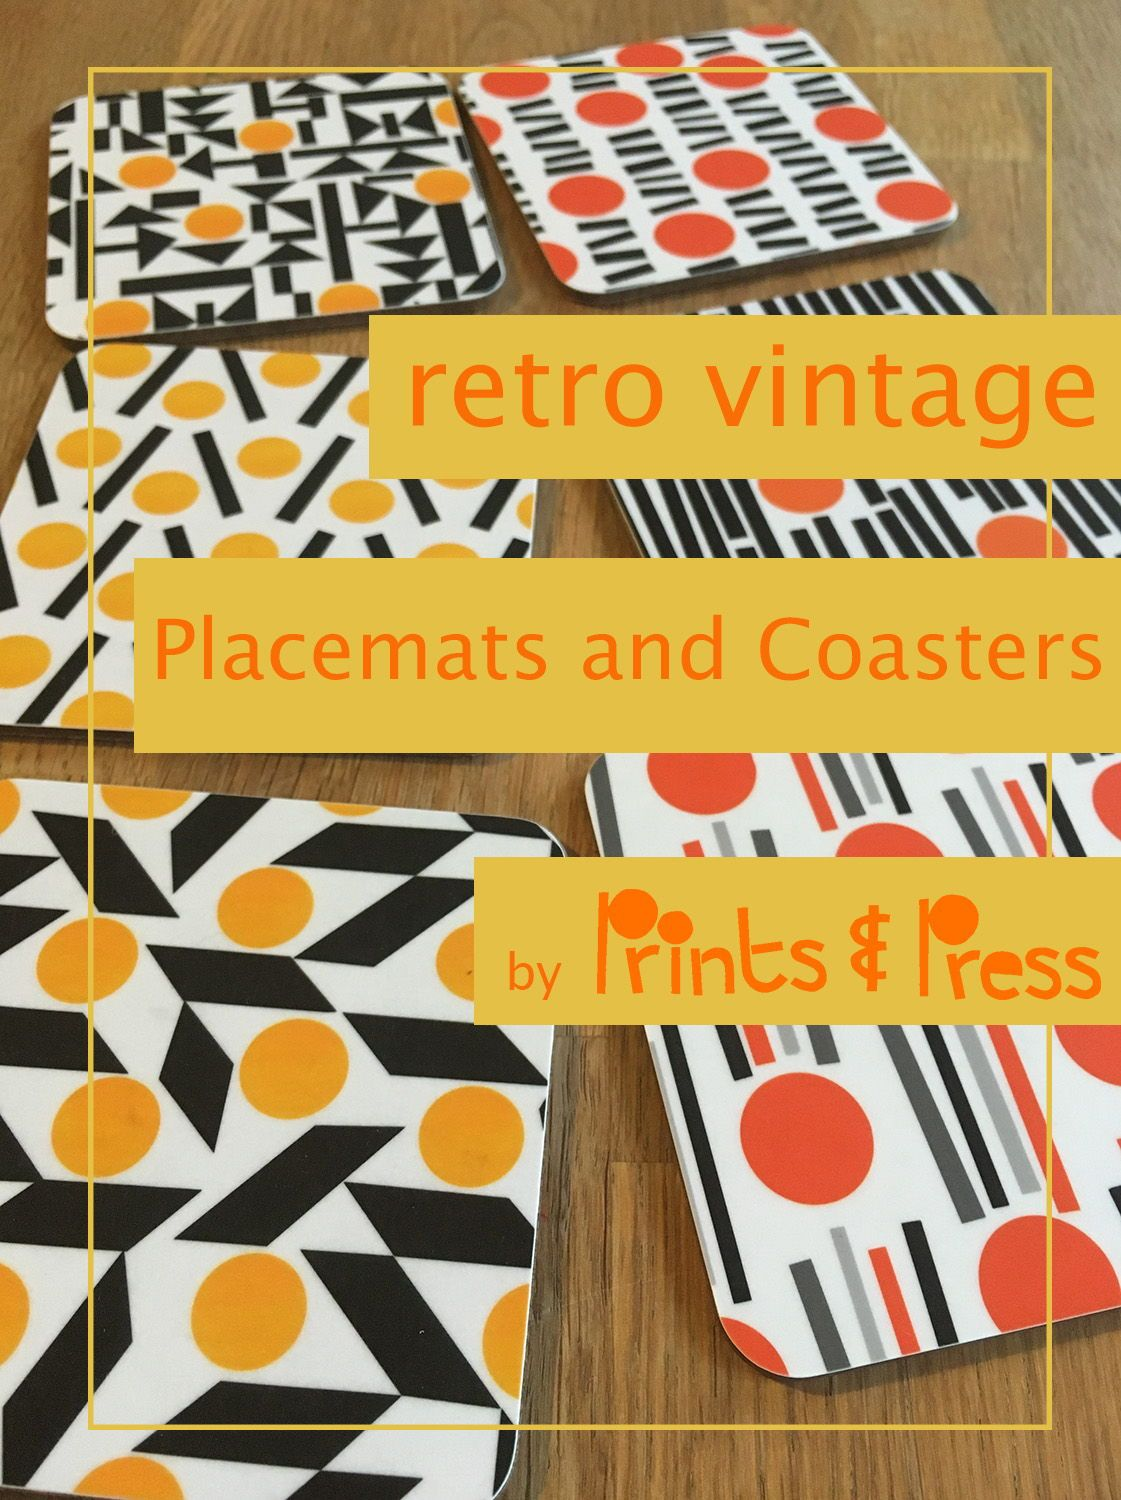 Retro Style Coasters And Placemats Placemats Yellow Home Decor Orange Home Decor